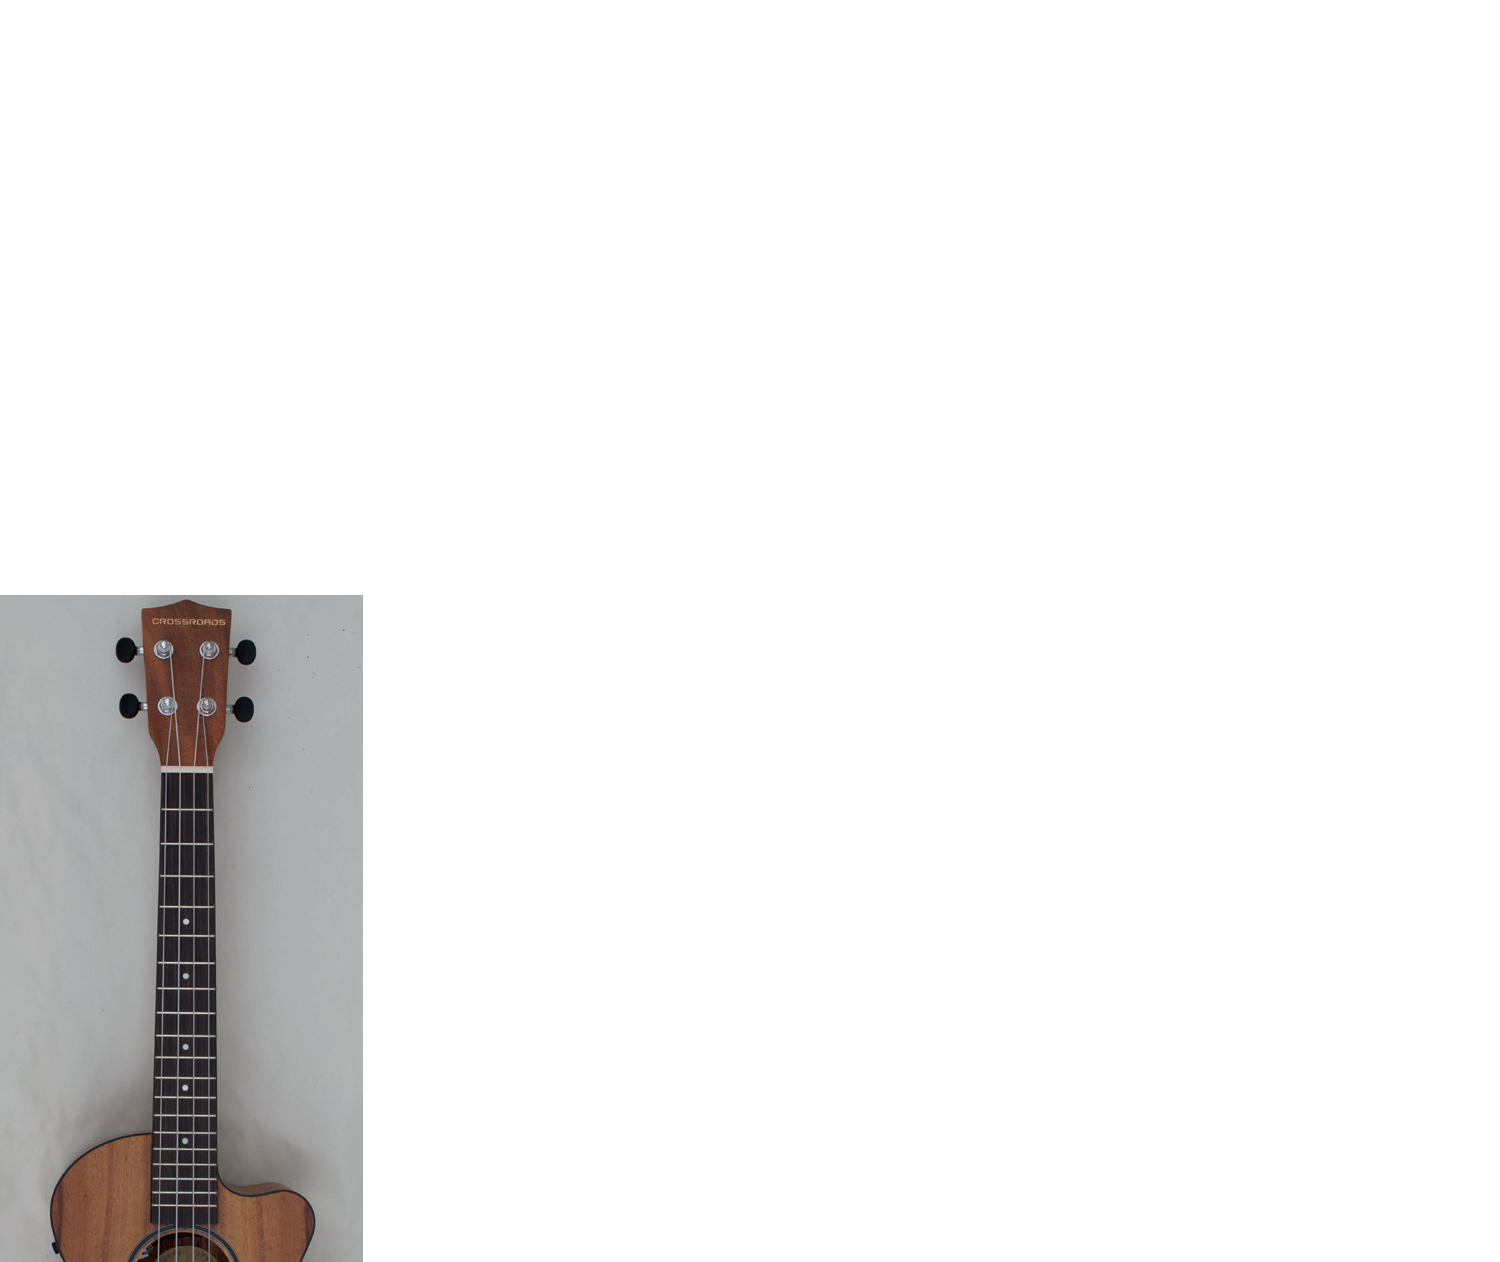 Spruce Ukulele acoustic or electric